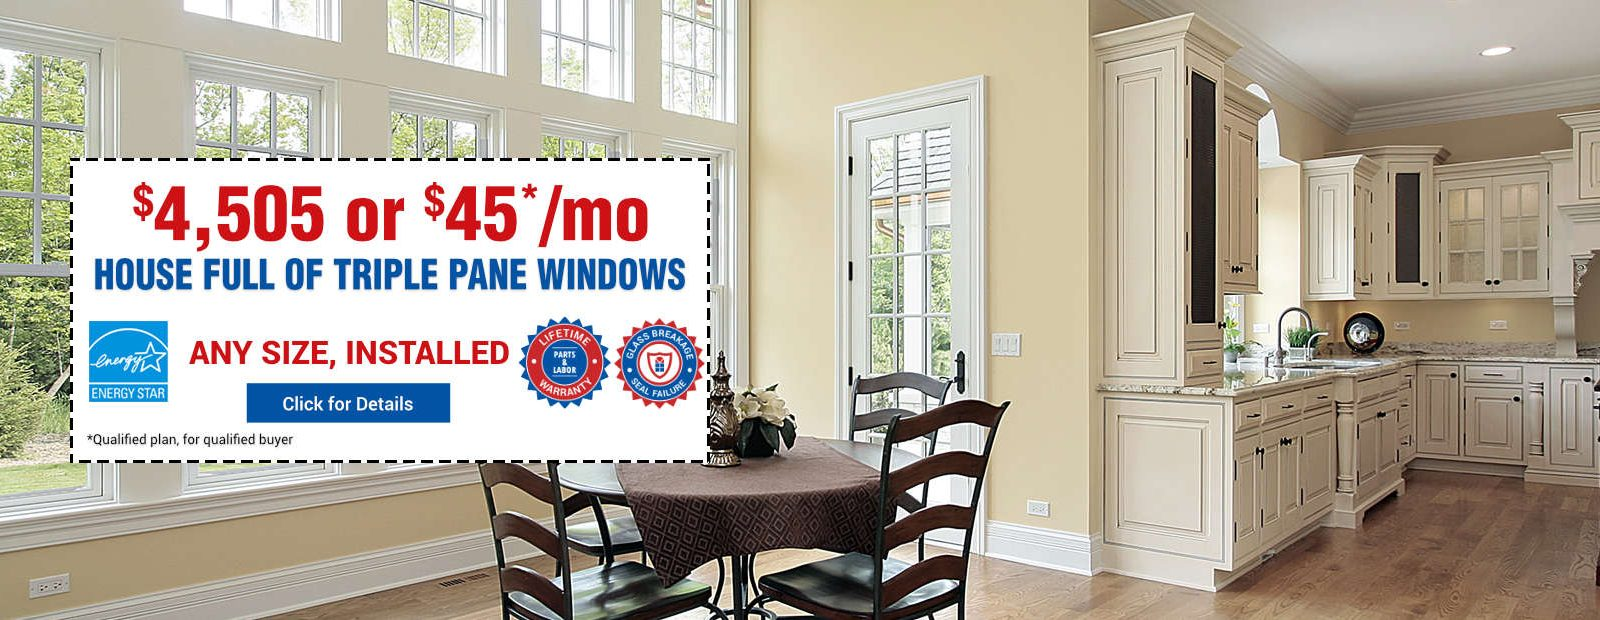 Offers on Replacement Windows